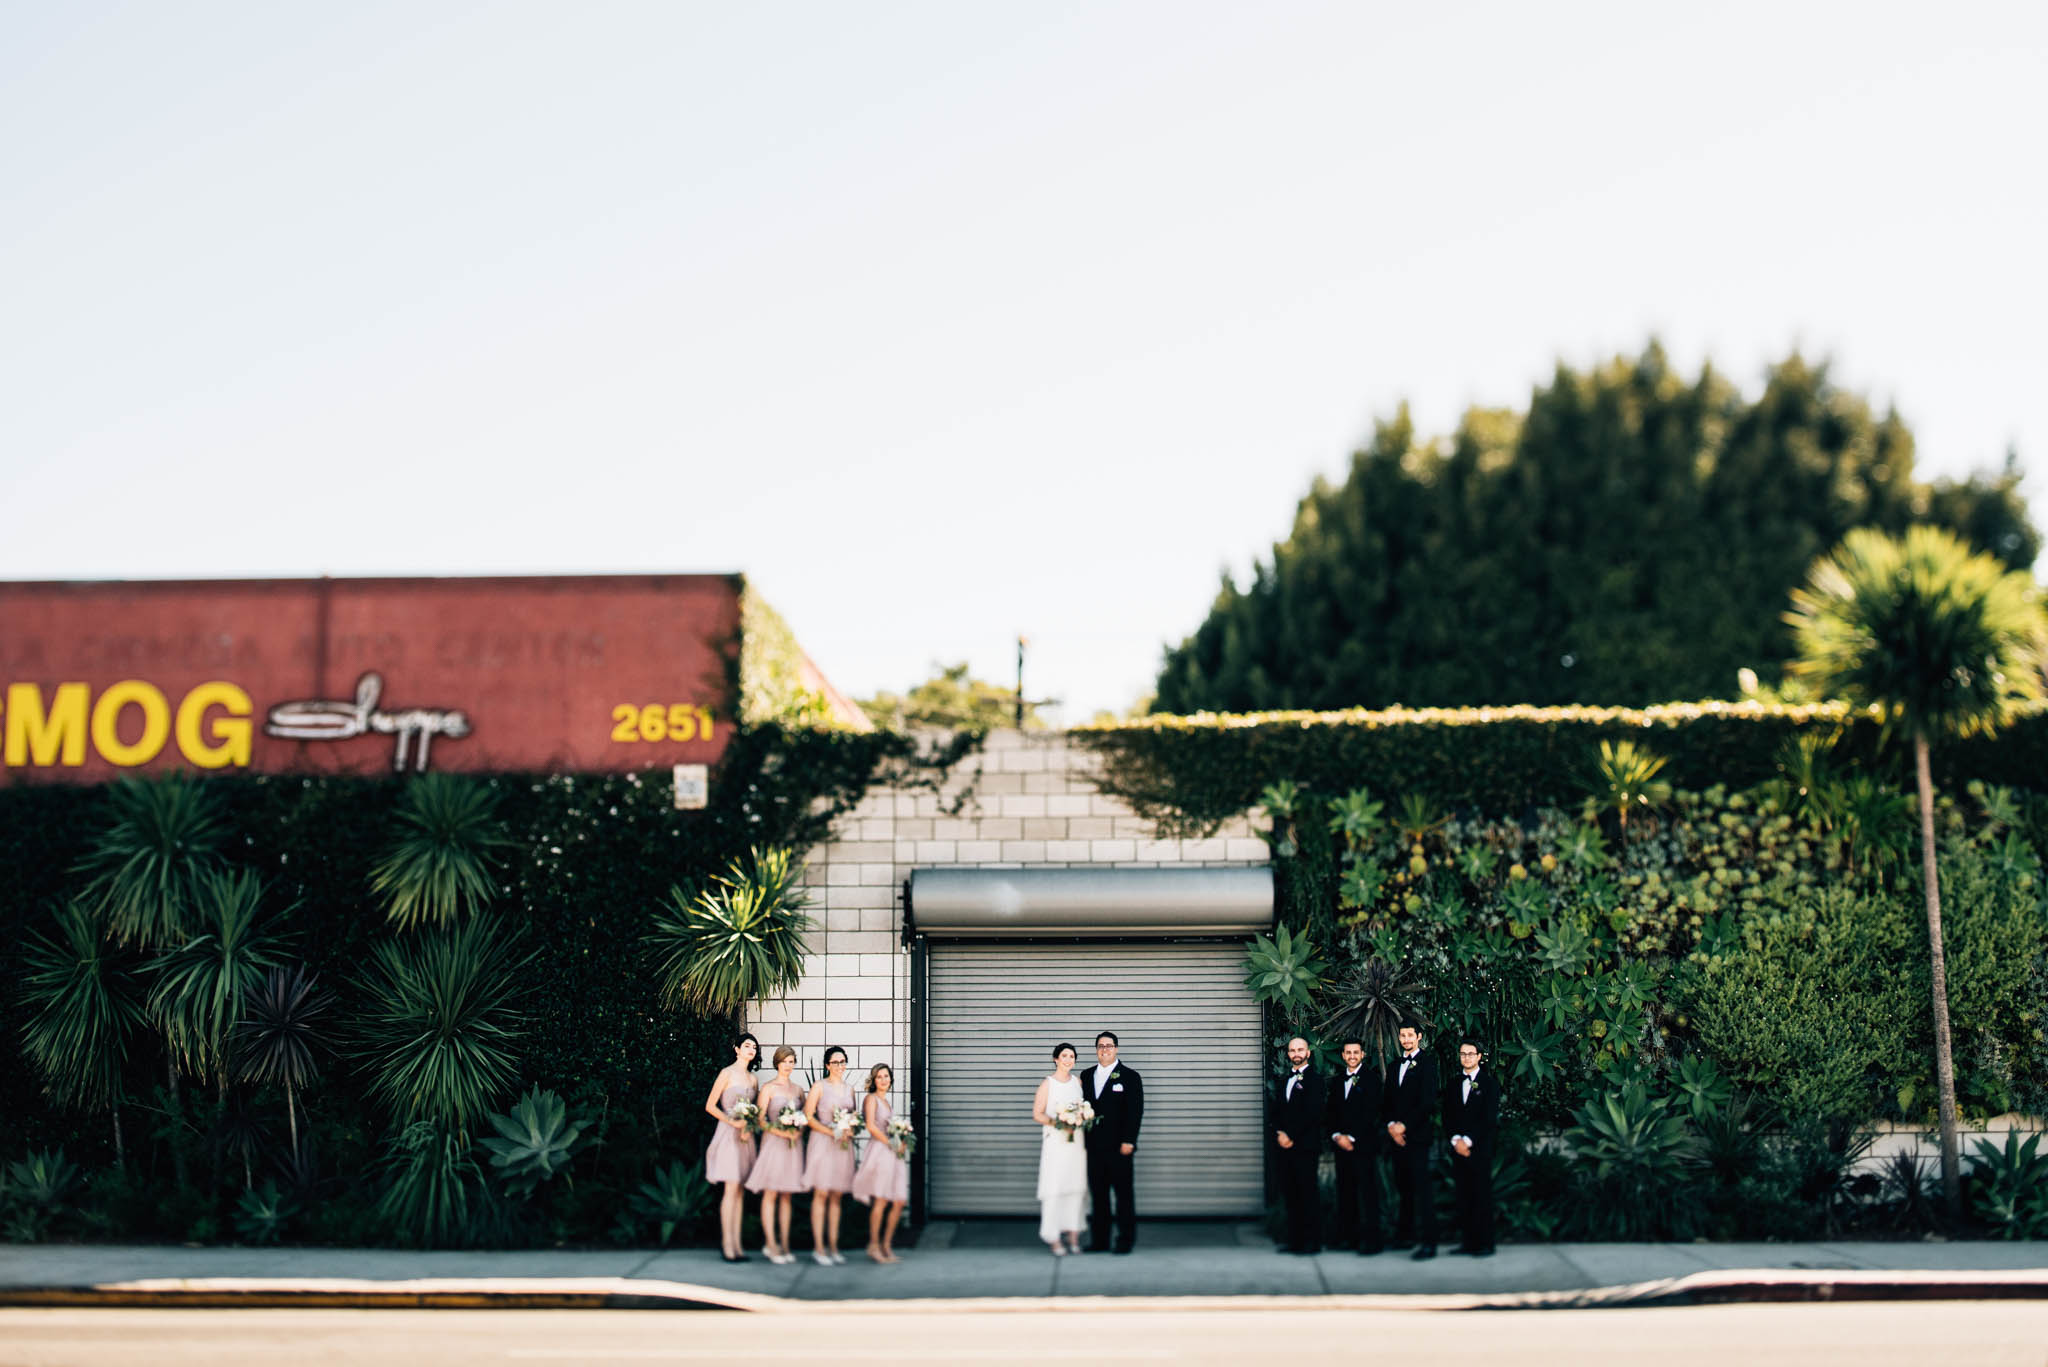 ©Isaiah & Taylor Photography - Los Angeles Wedding Photographer - Urban Downtown Warehouse Wedding- Smog Shoppe, Culver City-37.jpg